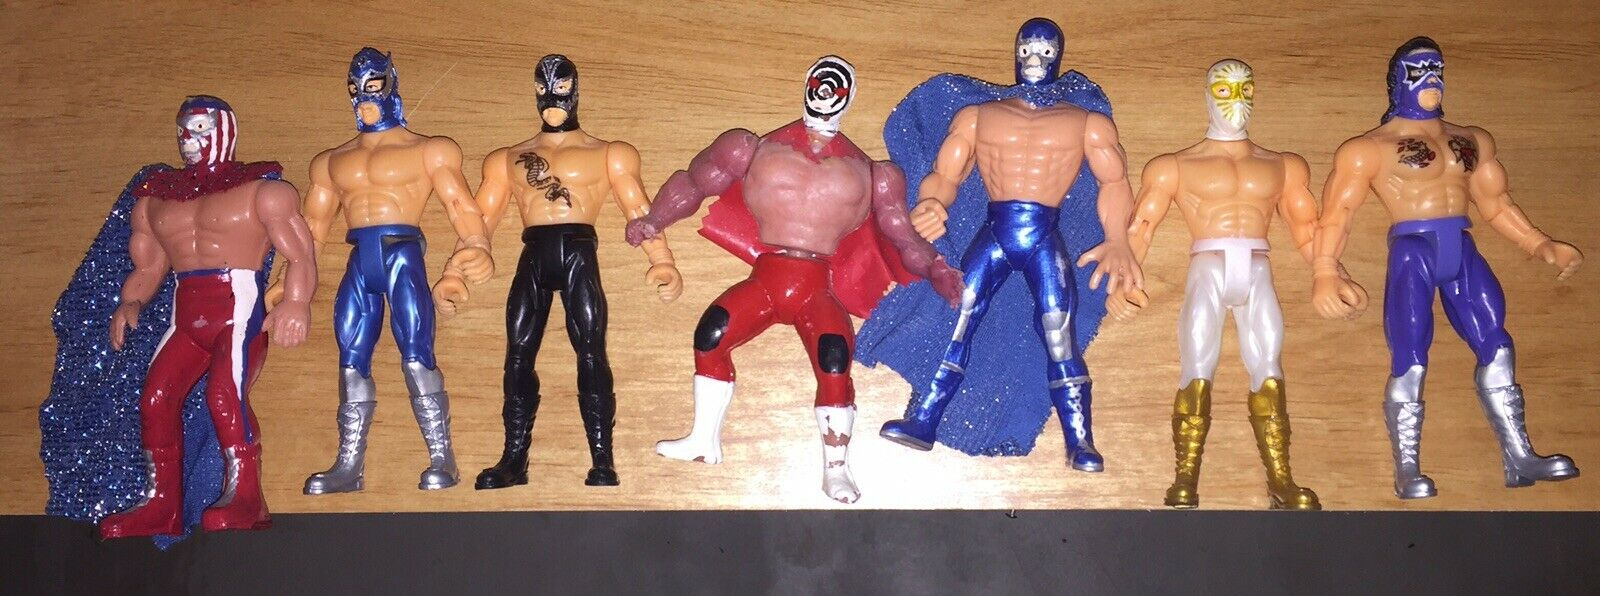 Lucha Libre Wrestling Action Figures Mexican Arena Figure